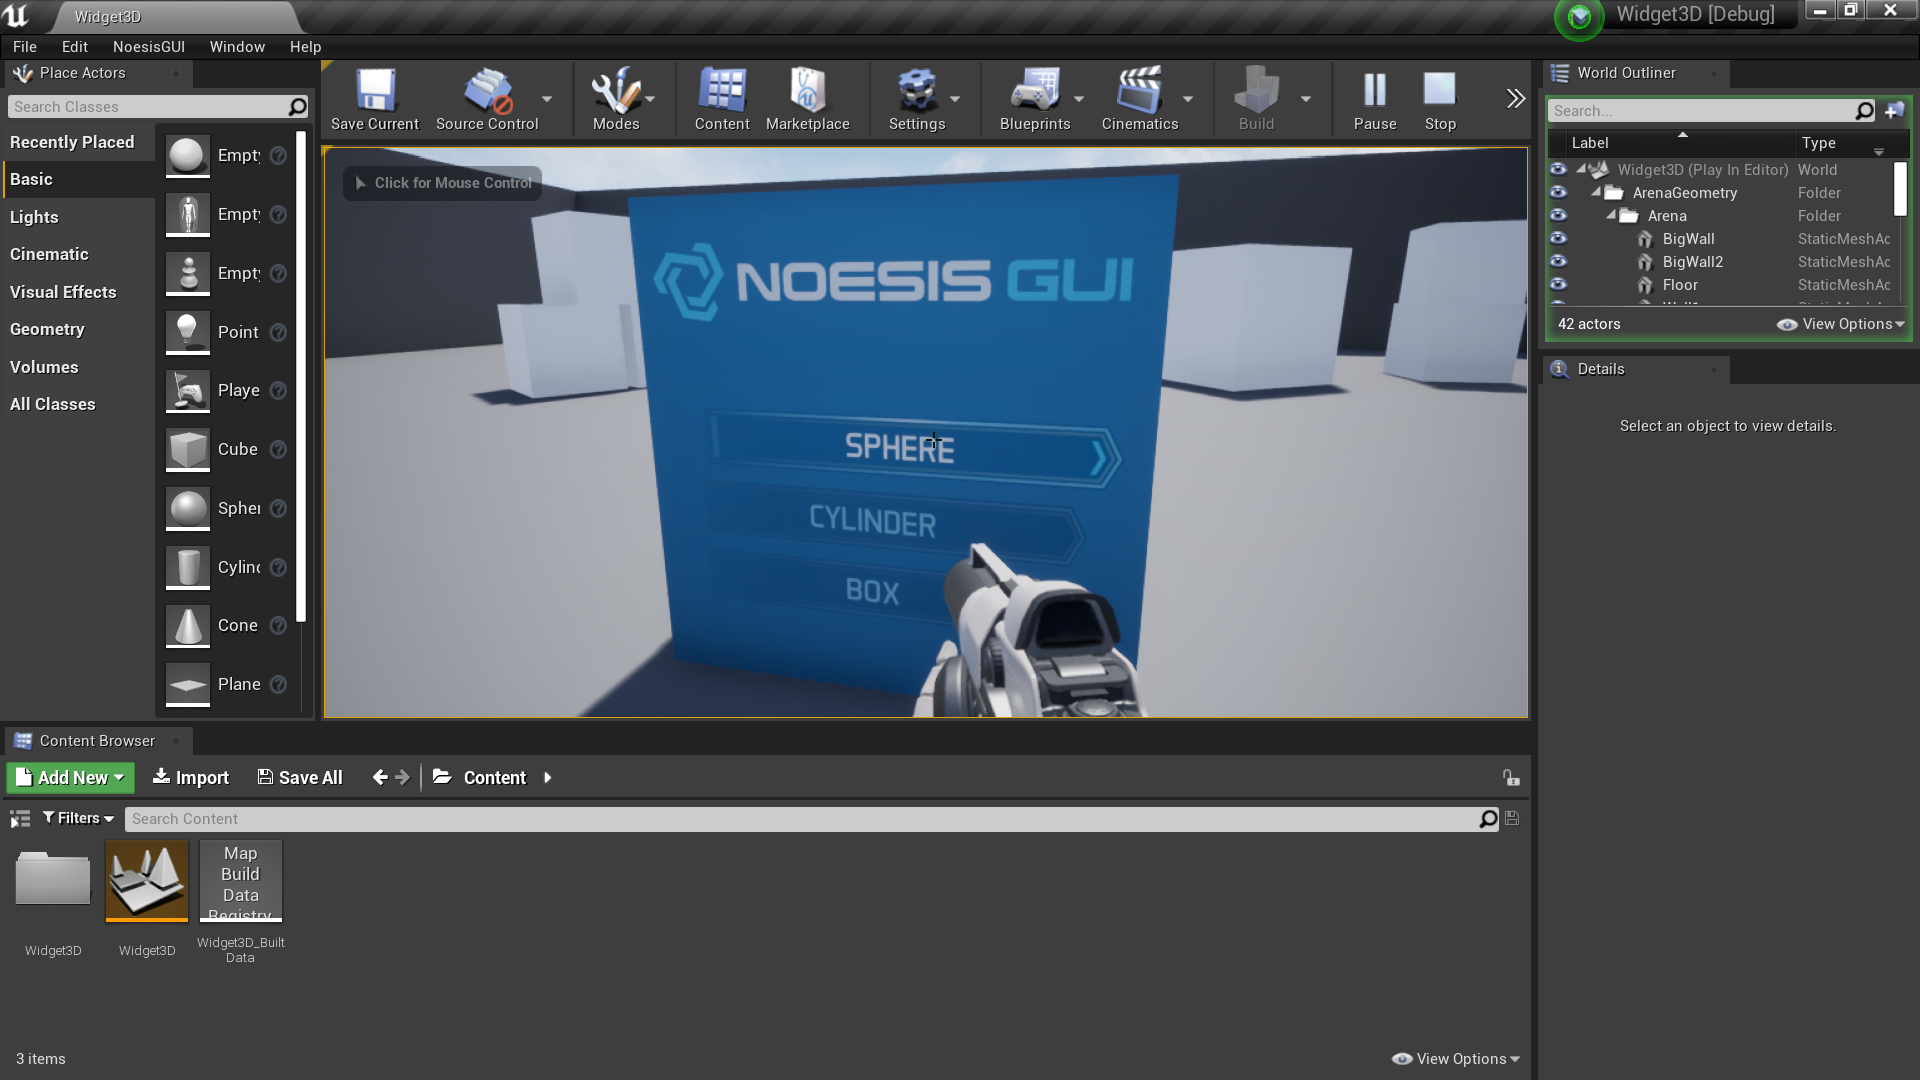 Tutorials/Samples/Widget3D/UE4 at master · Noesis/Tutorials